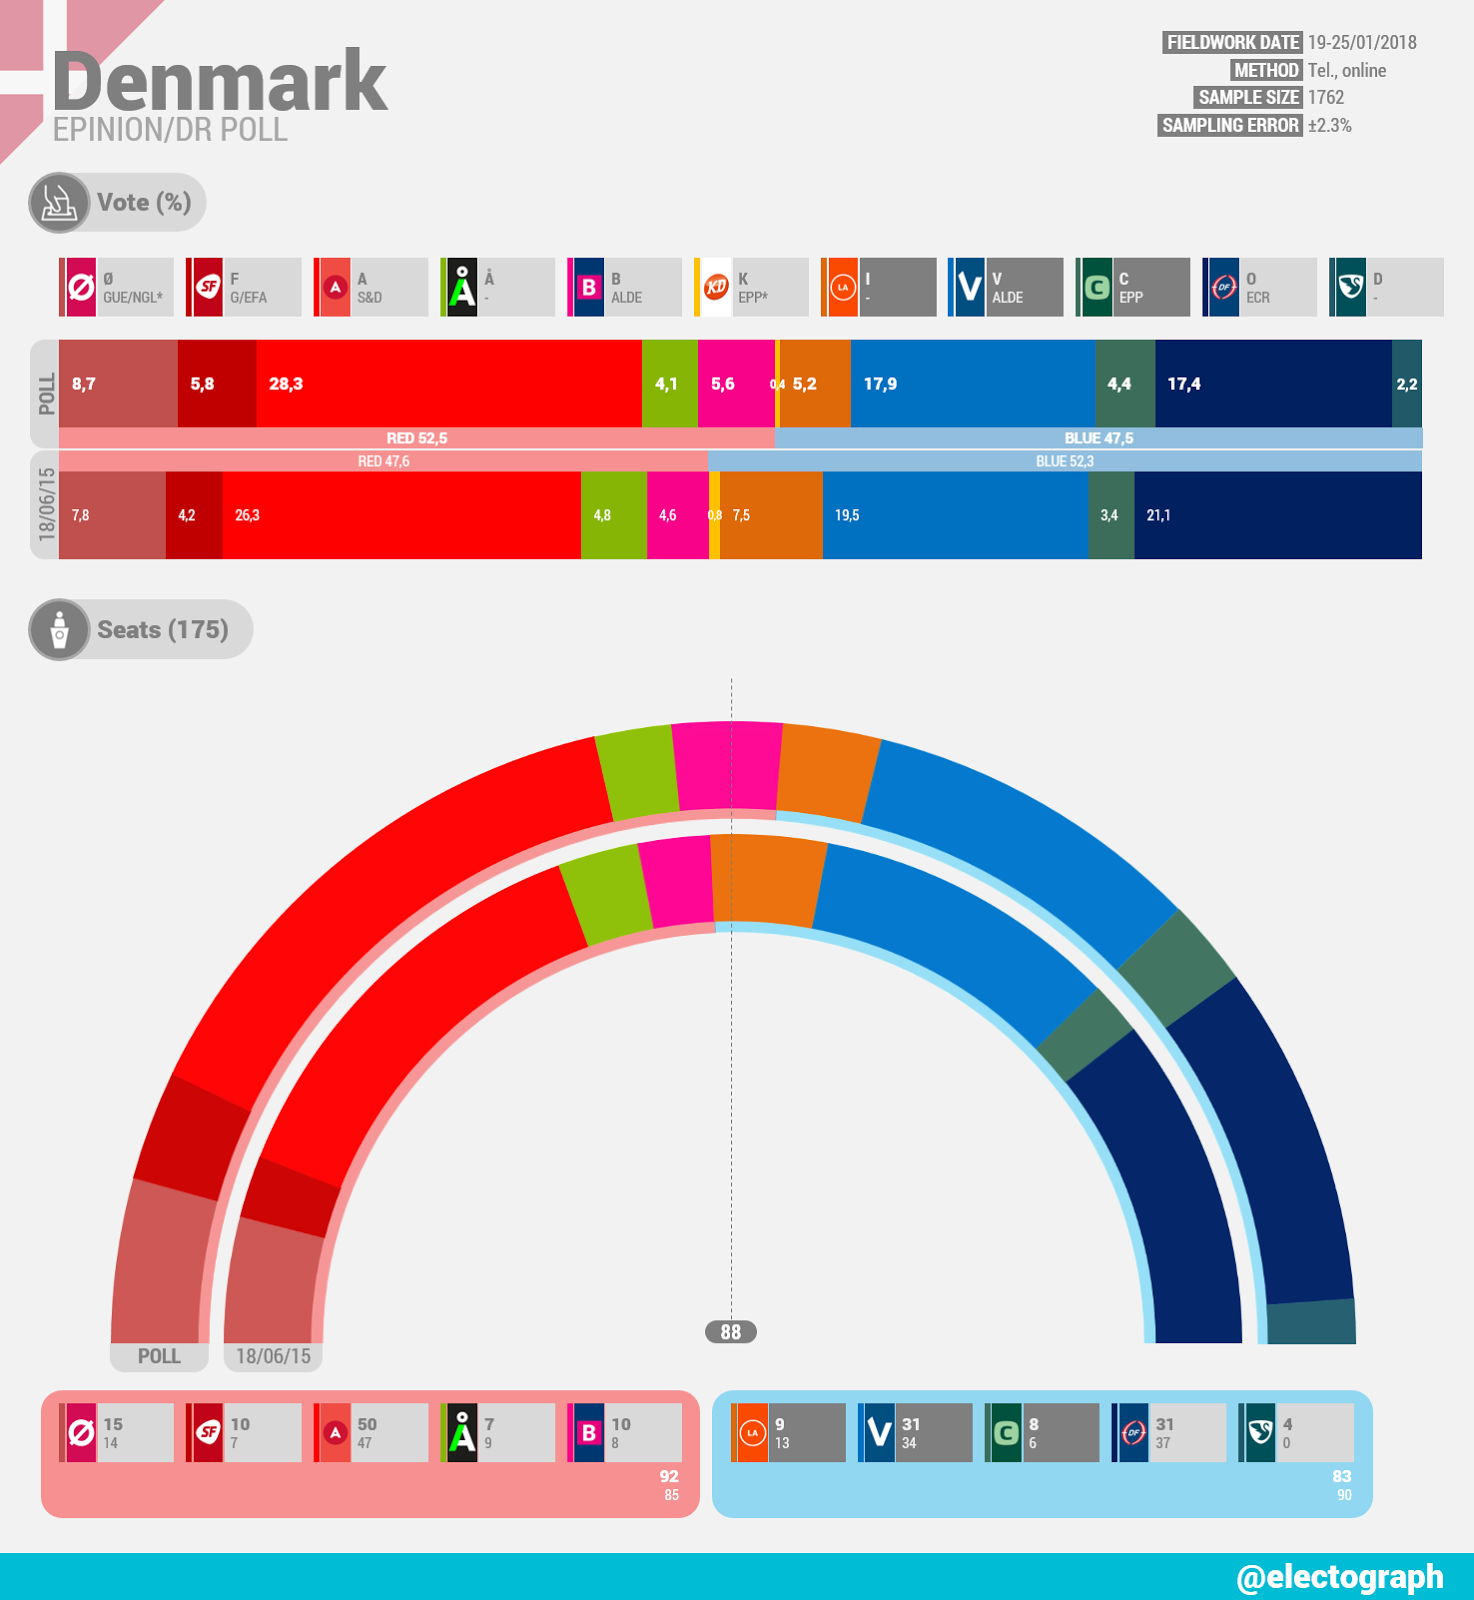 DENMARK Epinion poll chart for DR, January 2018